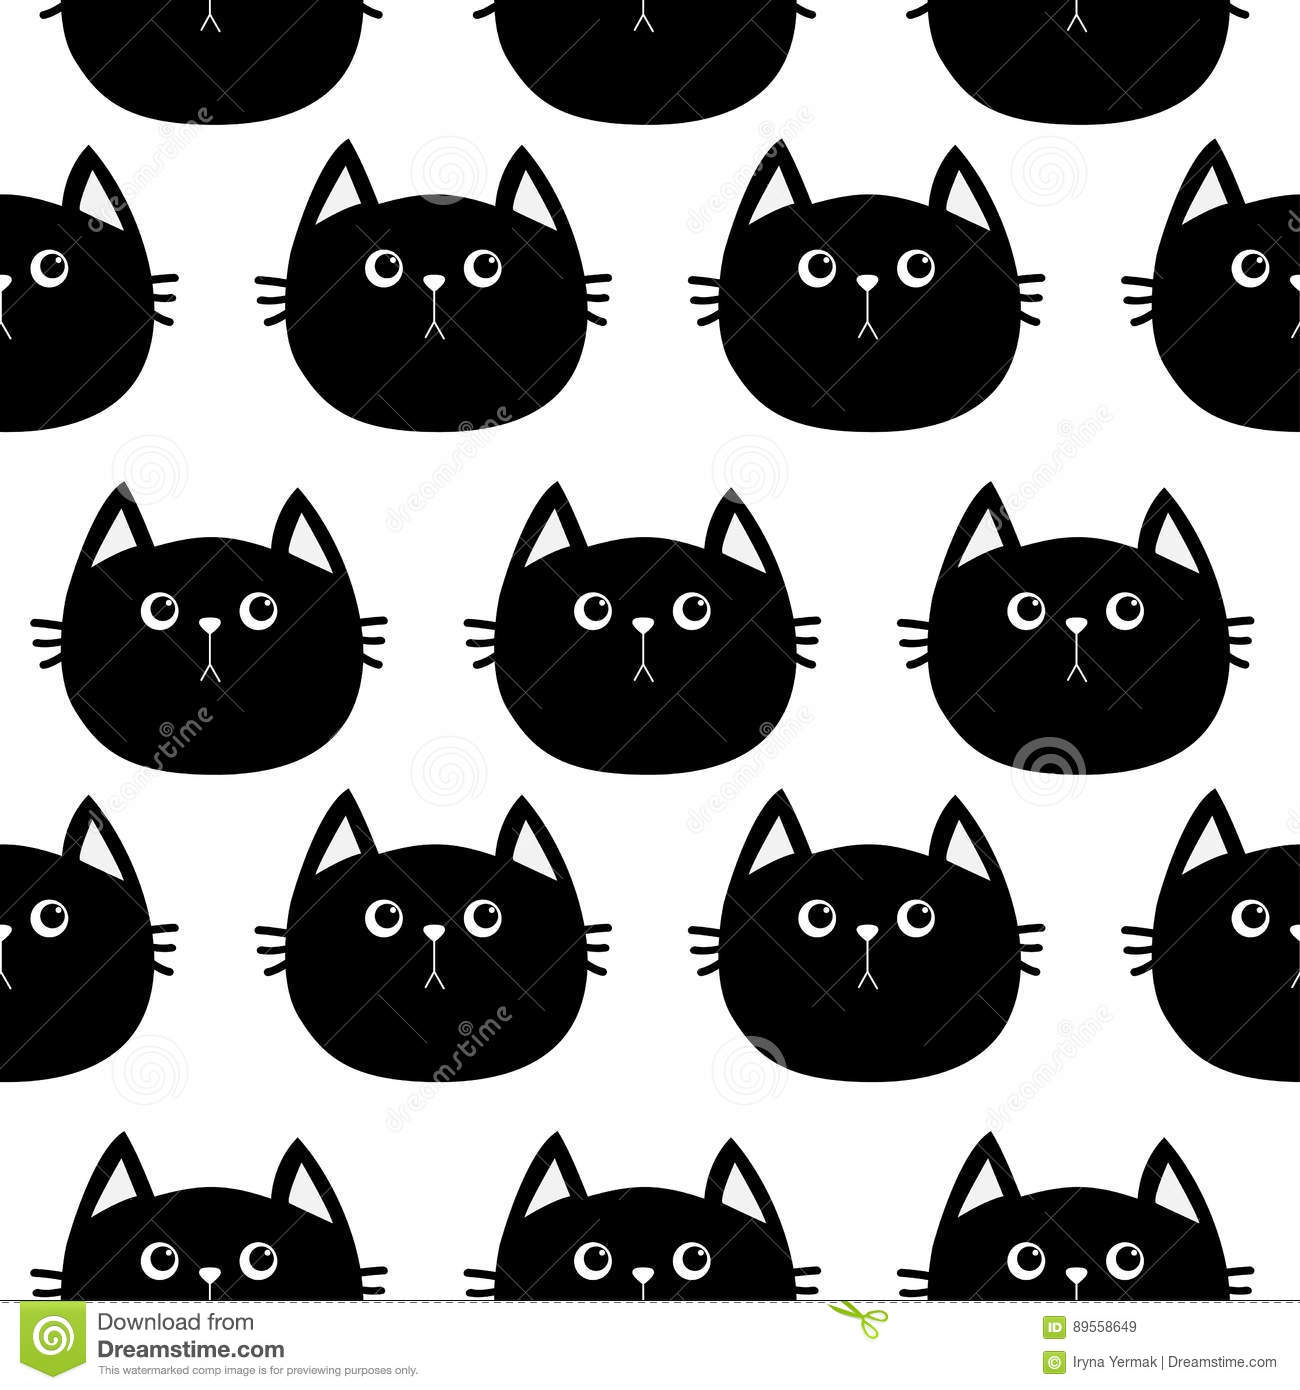 black cat cute cartoon character baby pet collection seamless